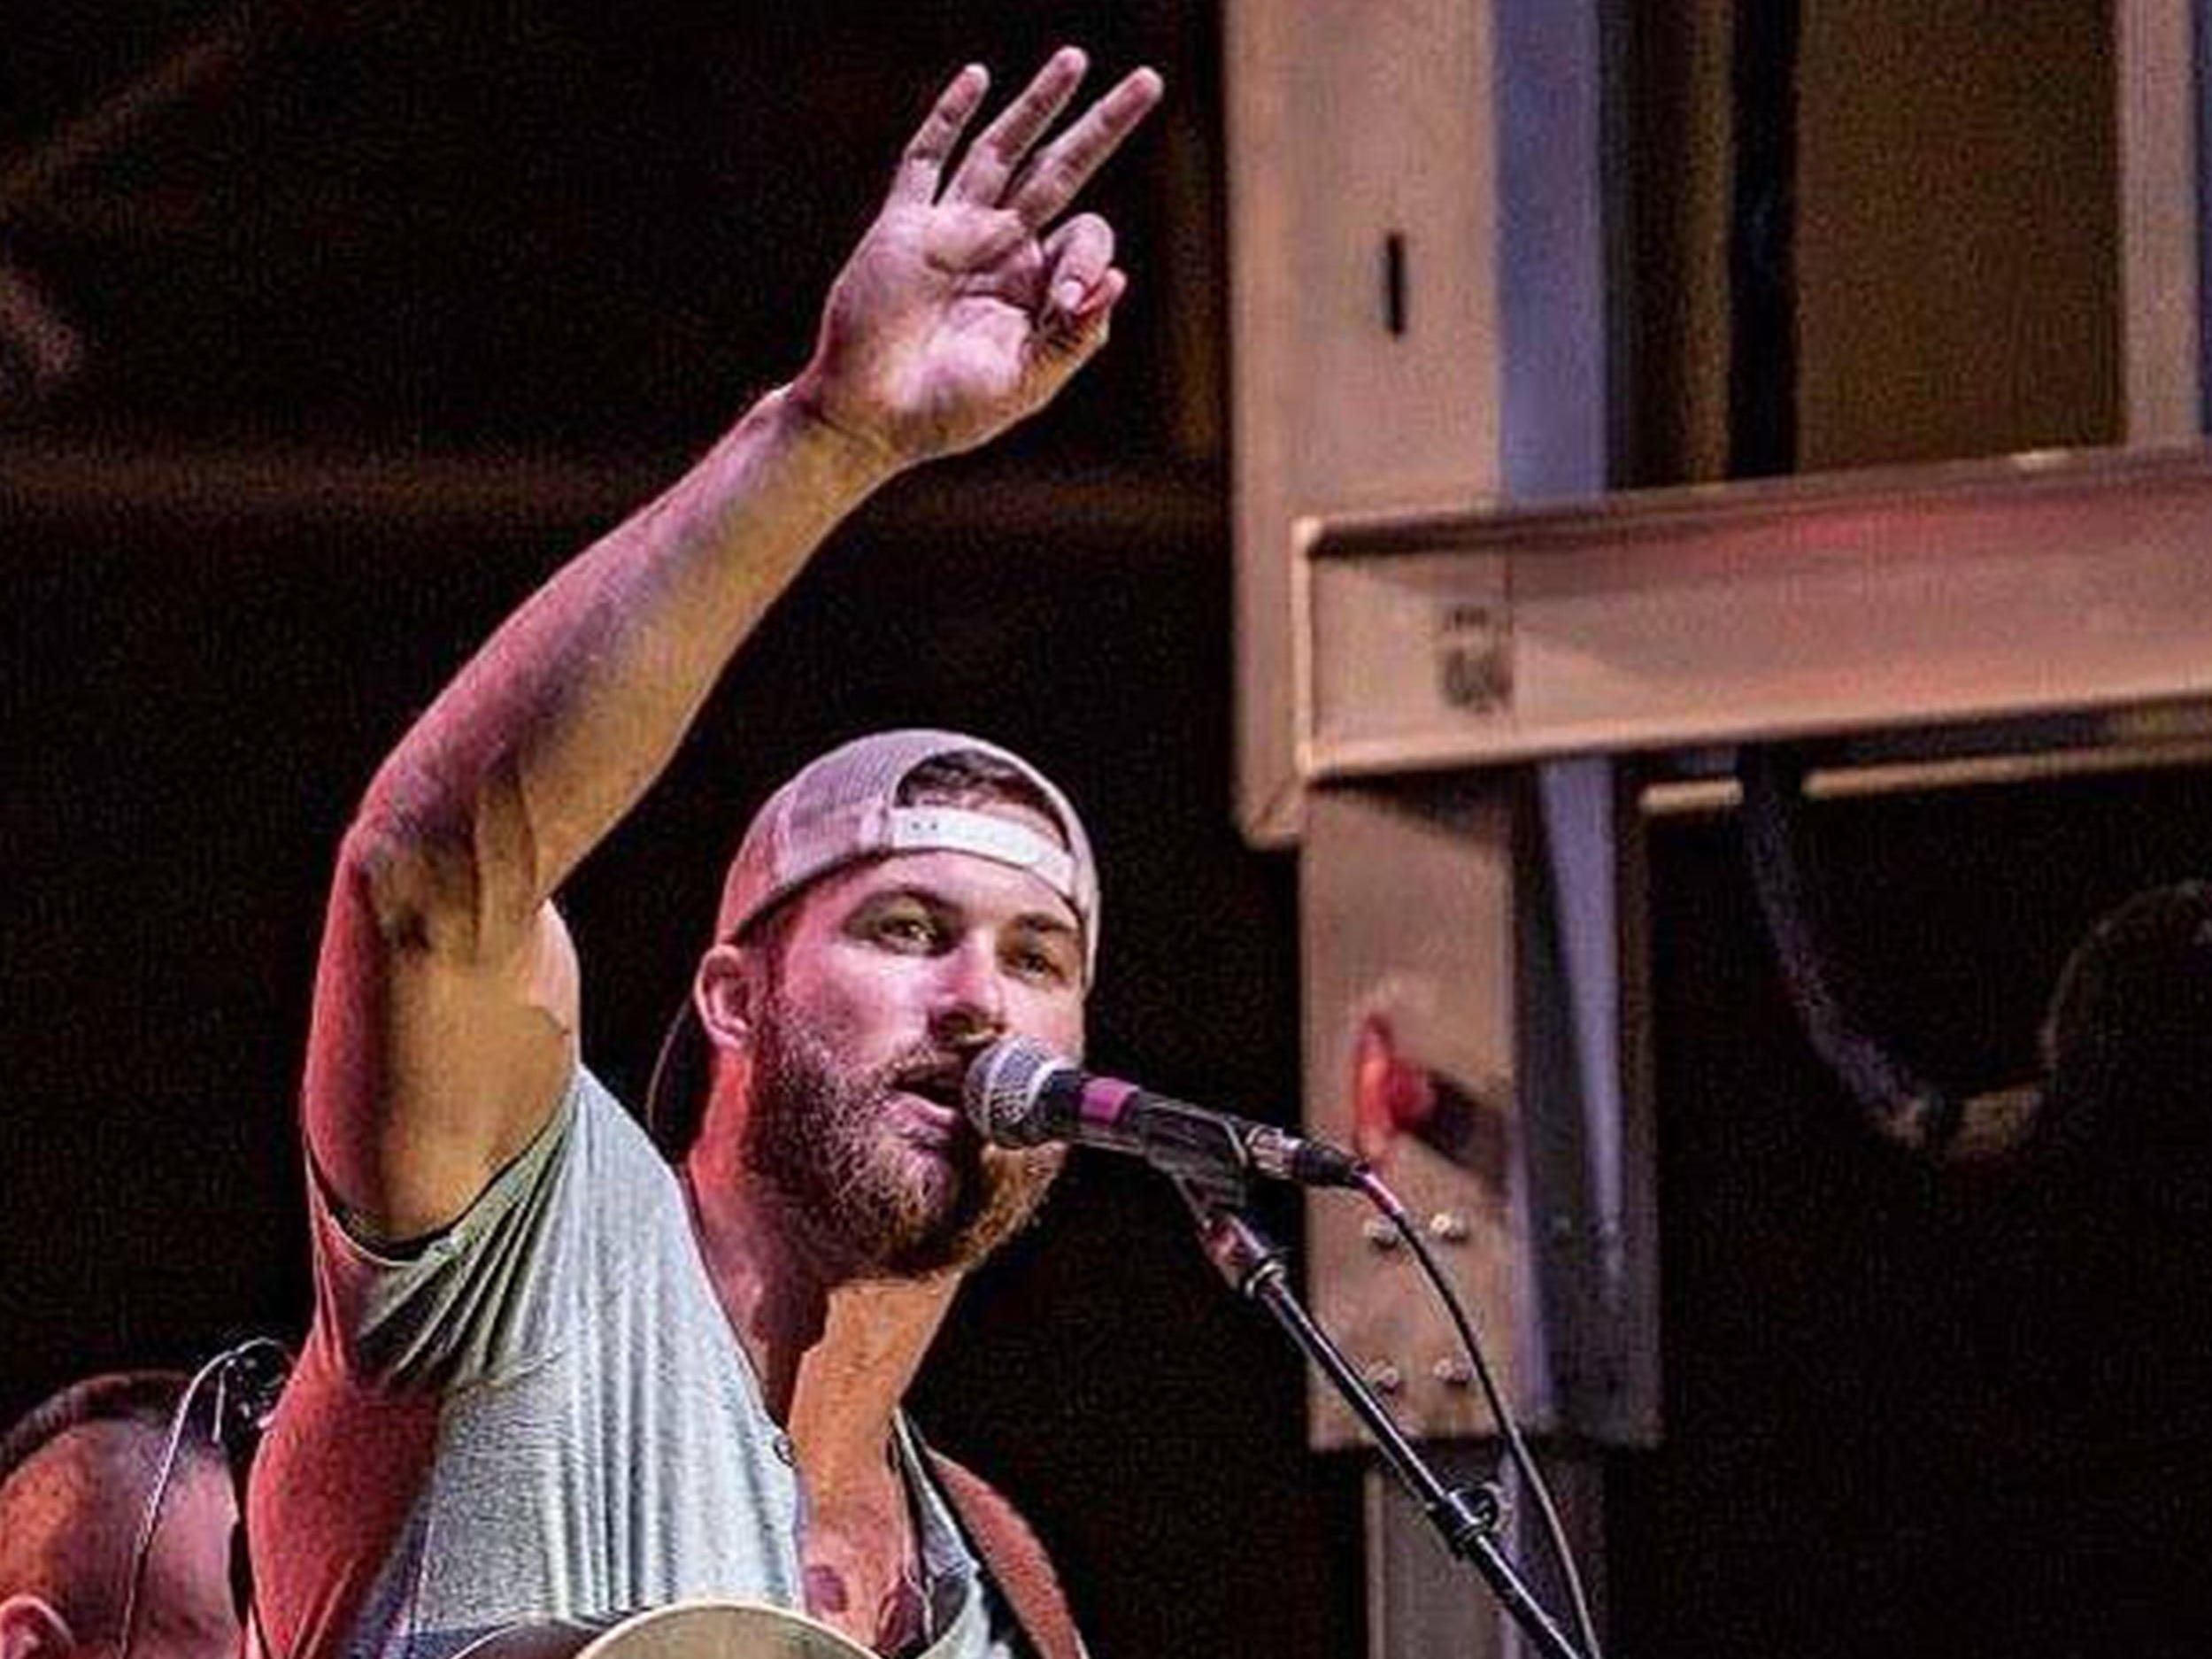 Riley Green is scheduled to play the Chevy Riverfront Stage at CMA Fest 2019.